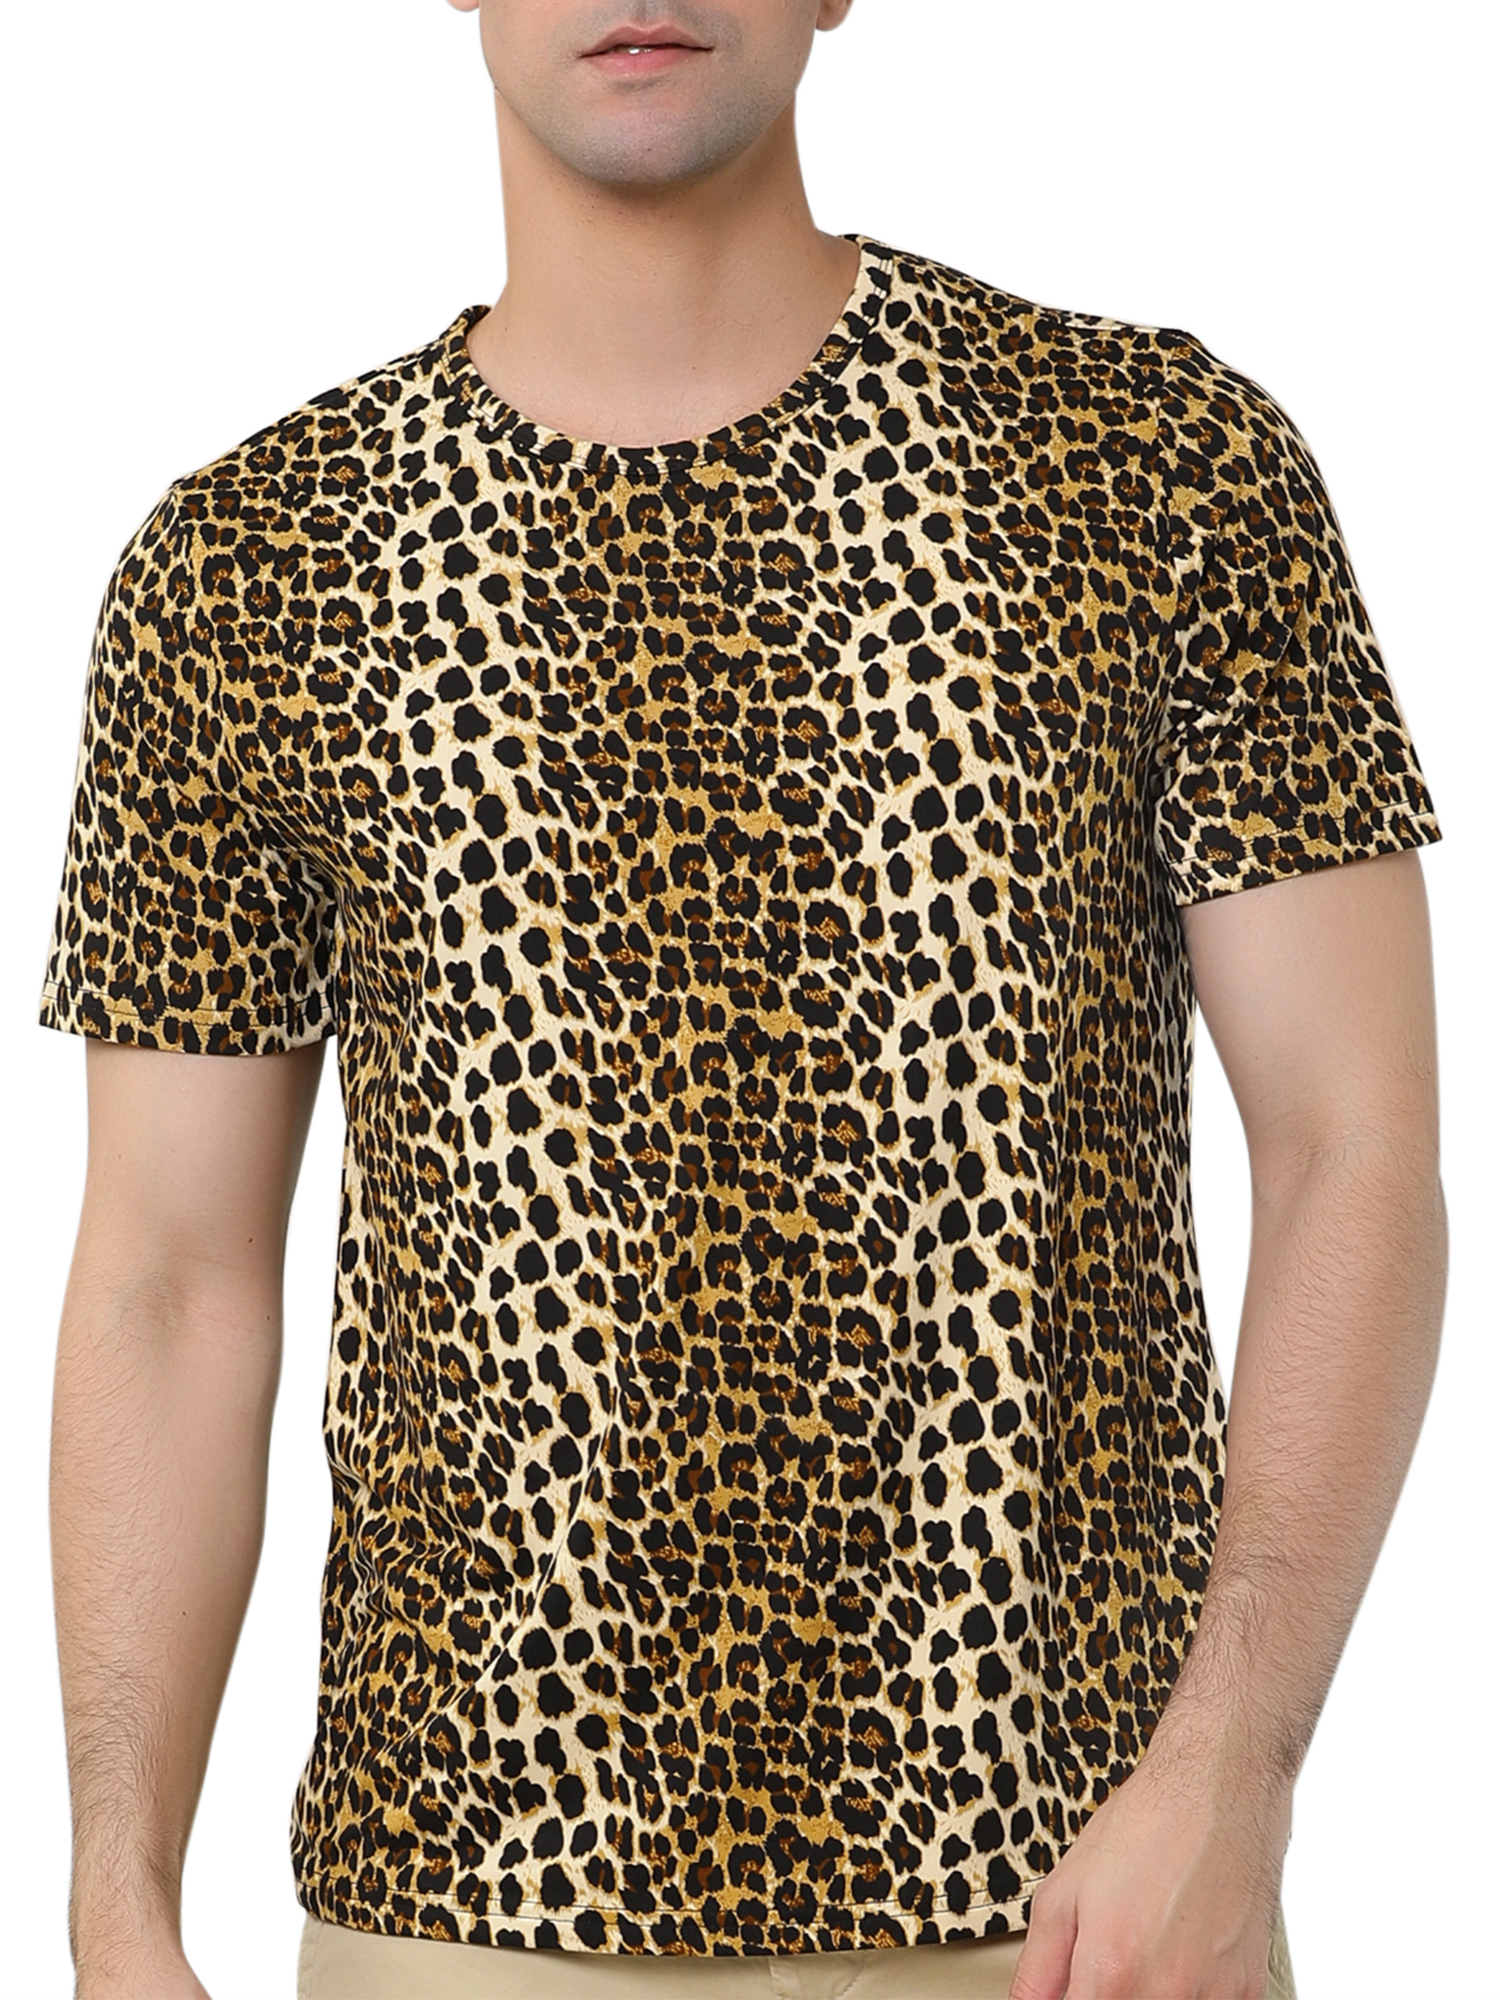 TX07 Mens Stylish Leopard Prints Slim Summer T-shirt Brown/ M (US 38)